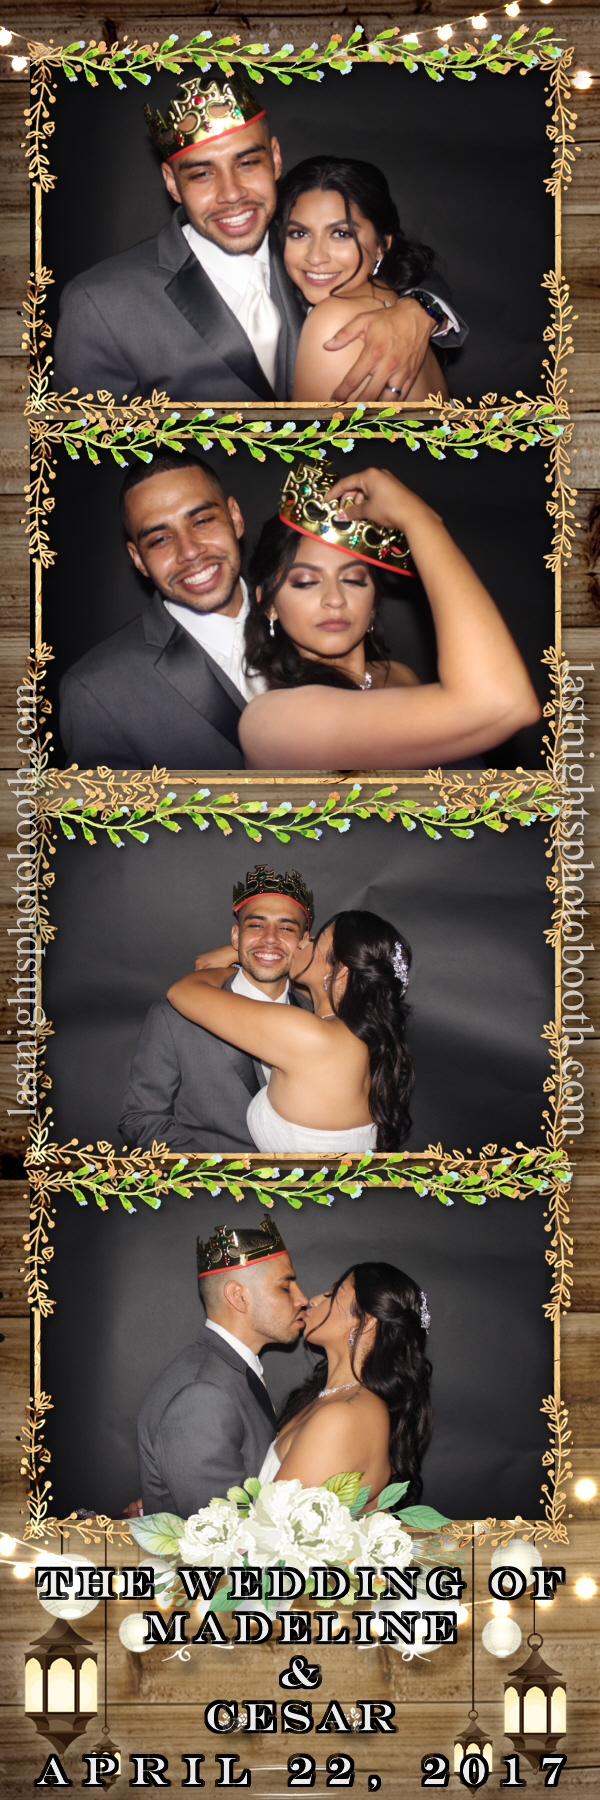 Photo Booth Rental For Madeline and Cesar Wedding_45